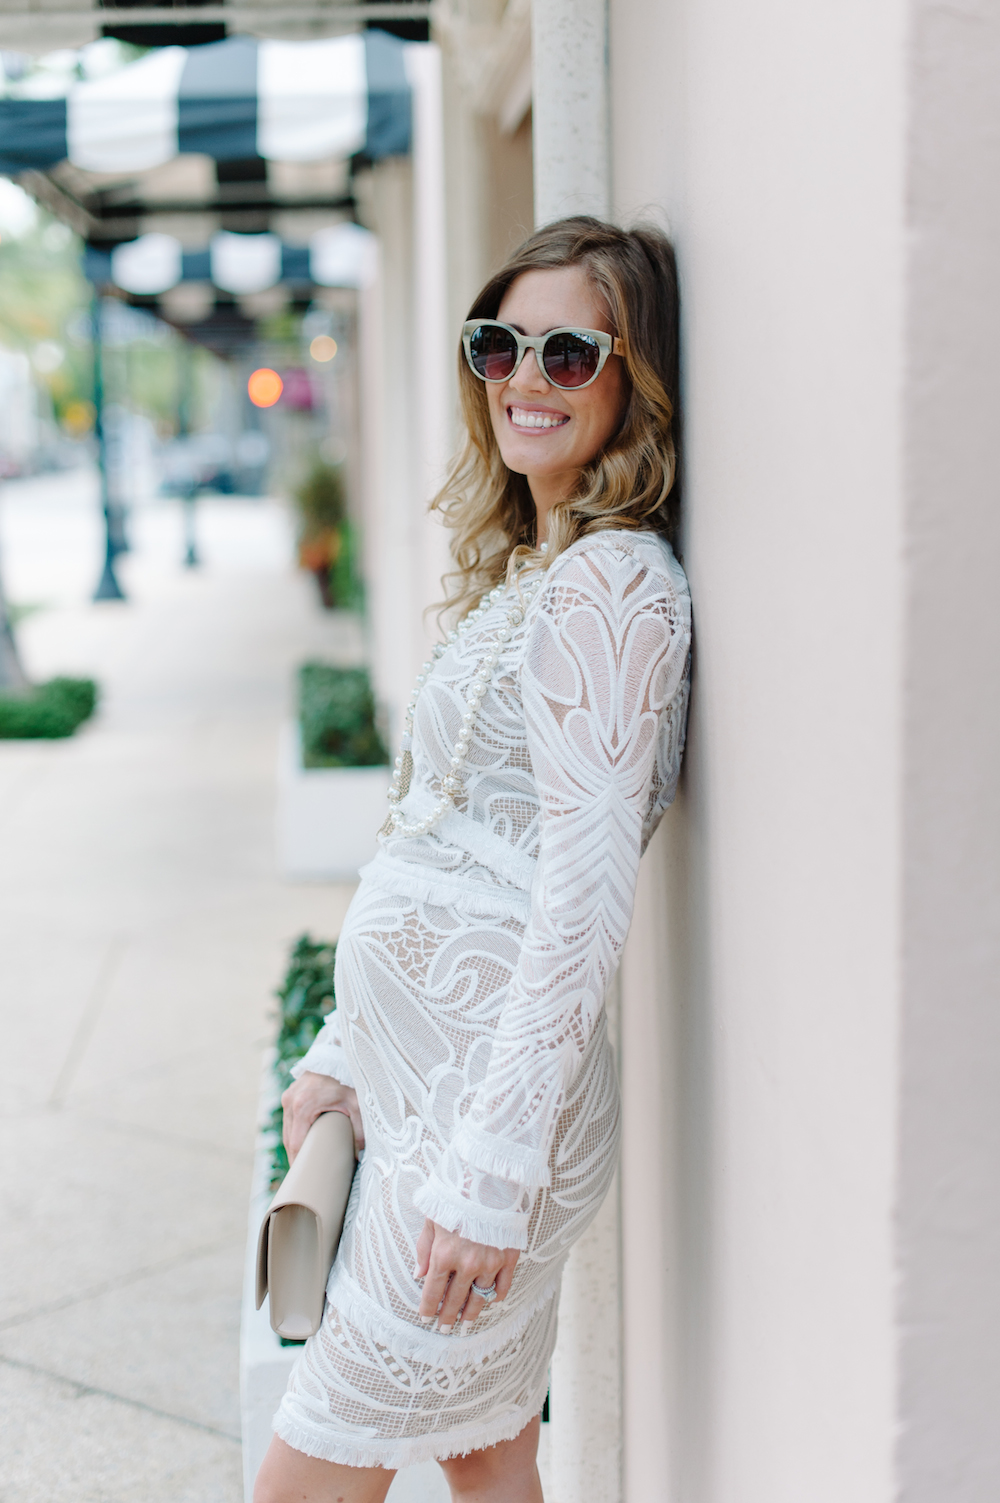 white_dress_clutch_sunglasses_pearls